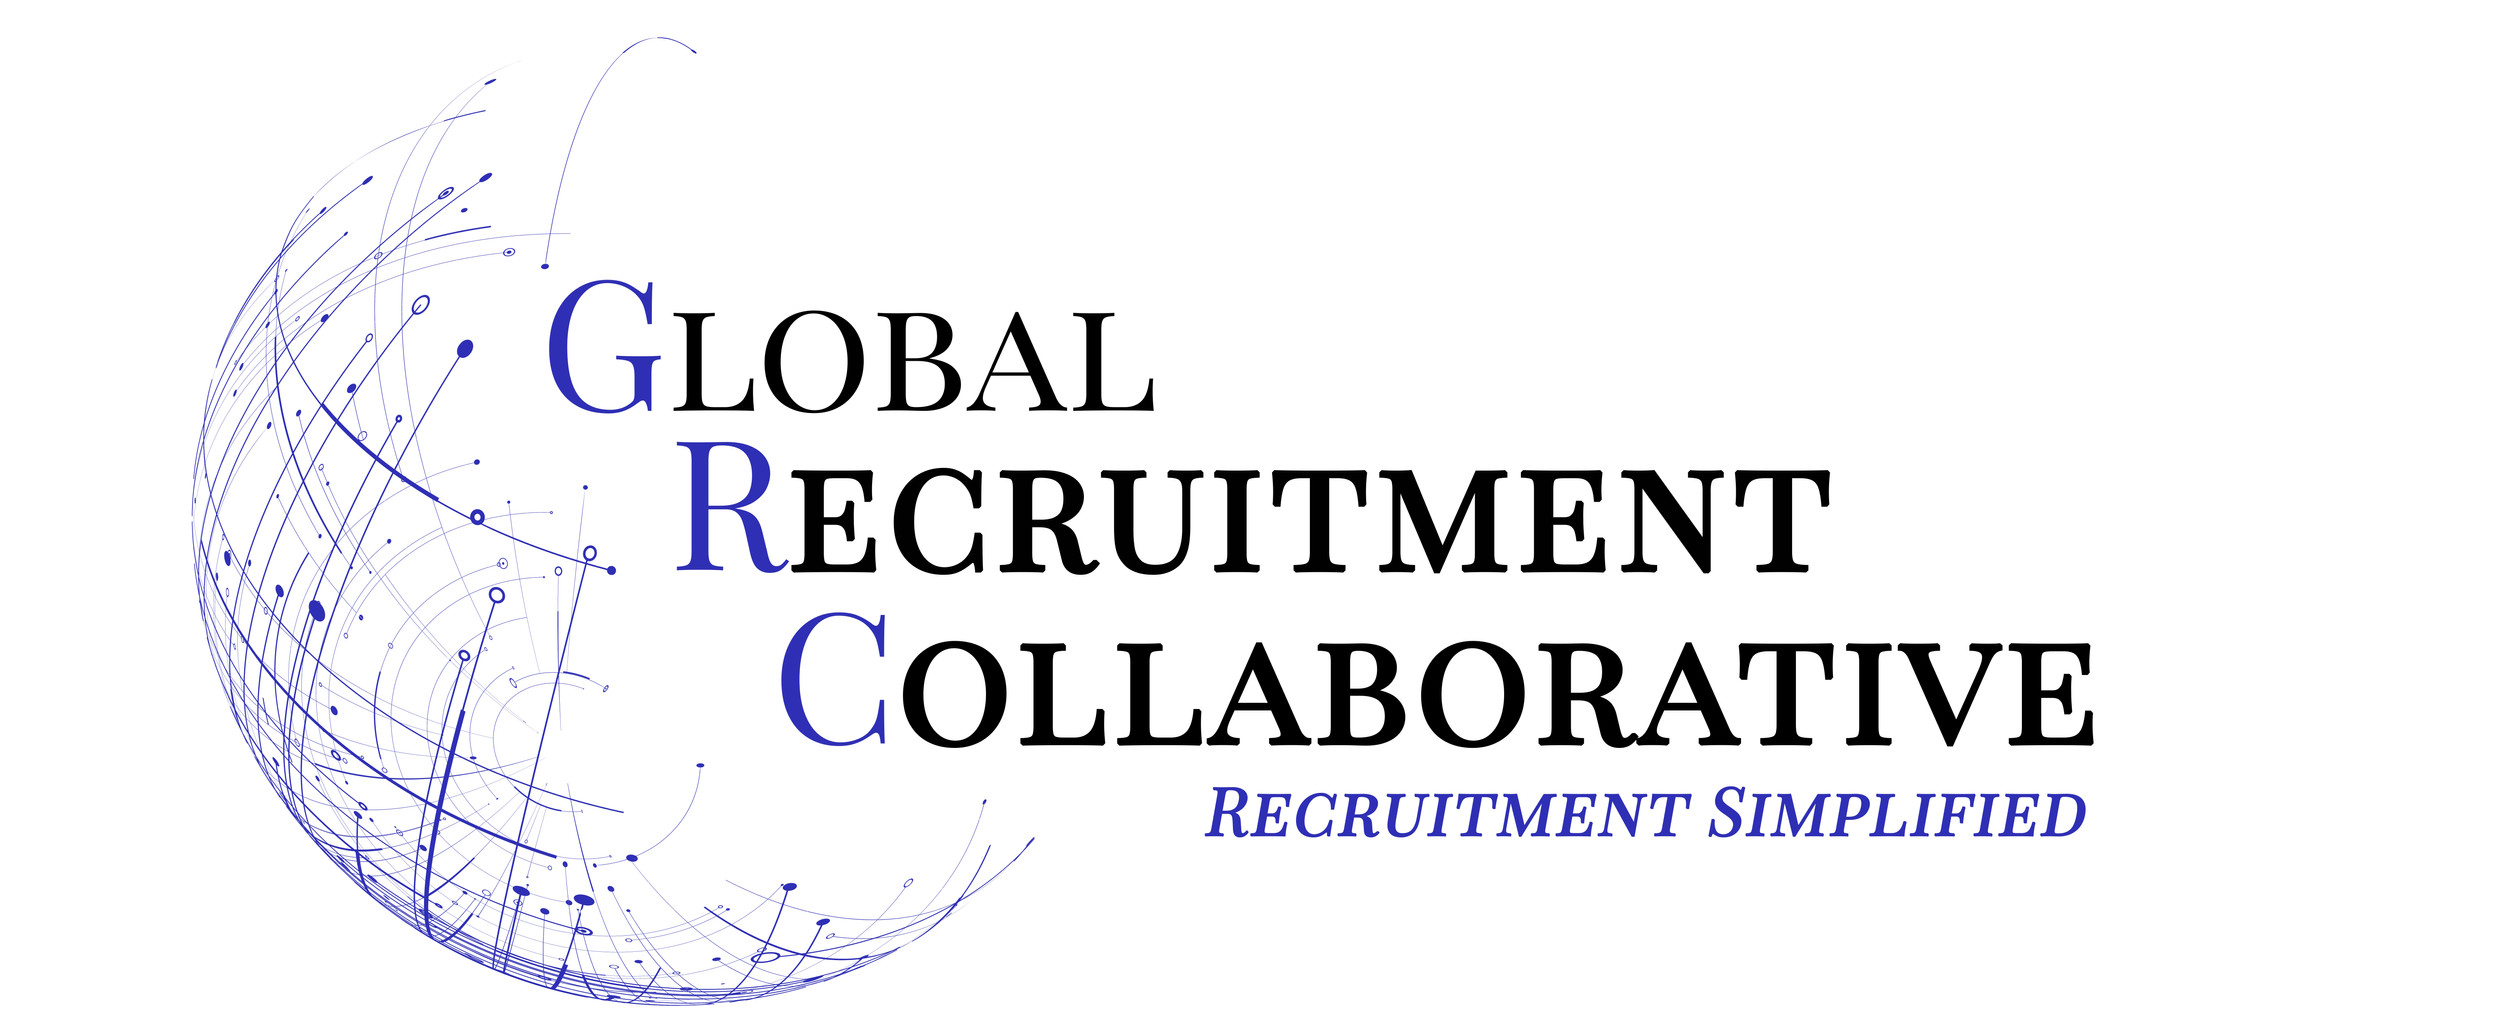 Jobs In Education | Global Recruitment Collaborative